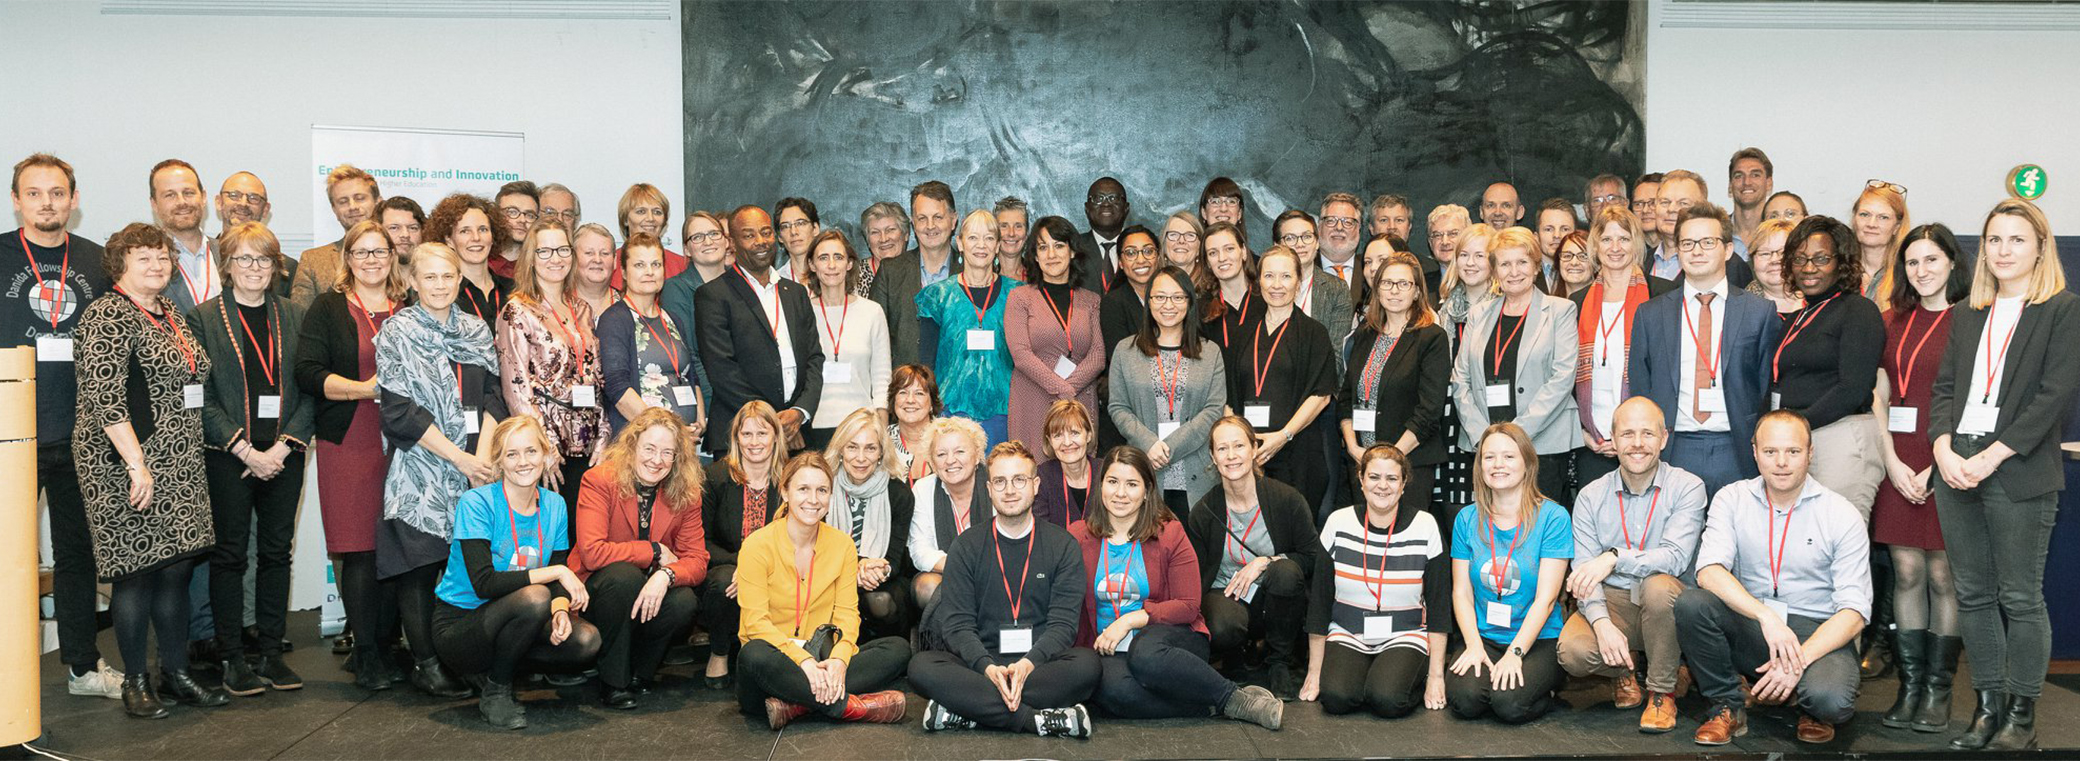 Eighty-one representatives of 36 Europe based organisations that administer capacity building and higher learning programmes in the global met in Copenhagen. Photo: Crawfurd Media